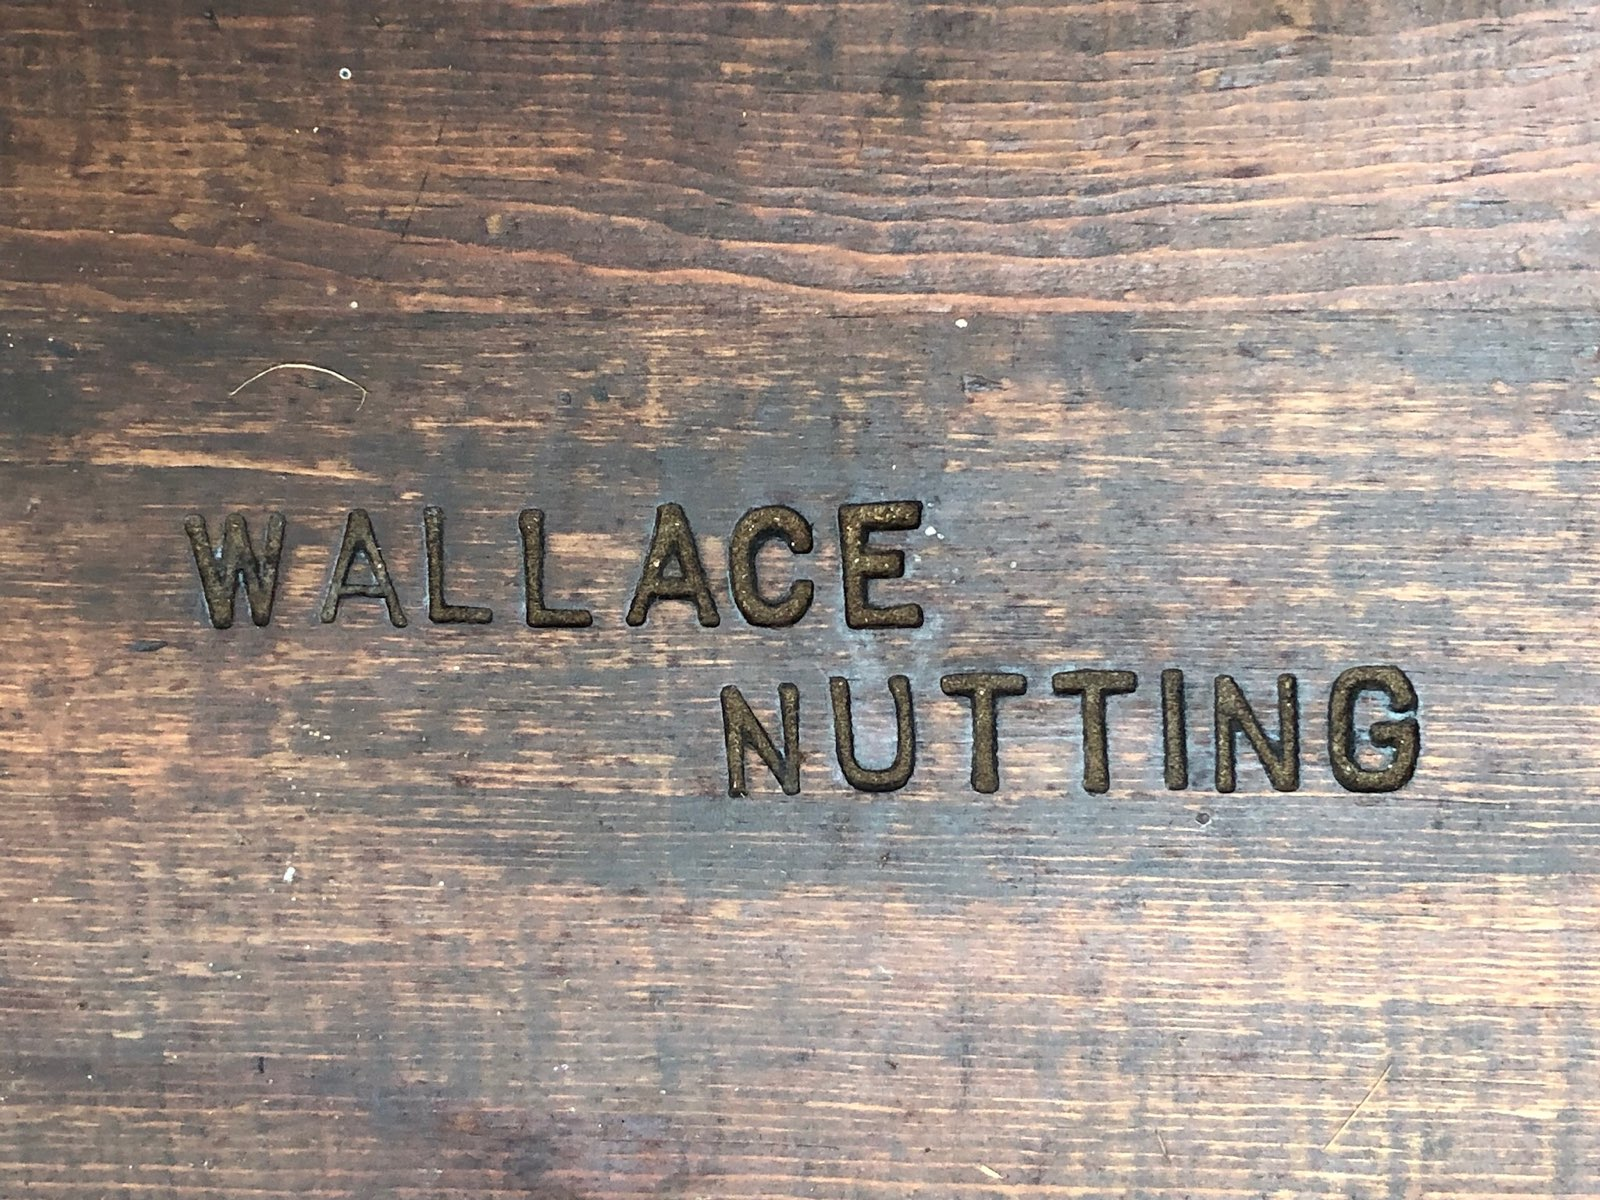 Wallace nutting table 2